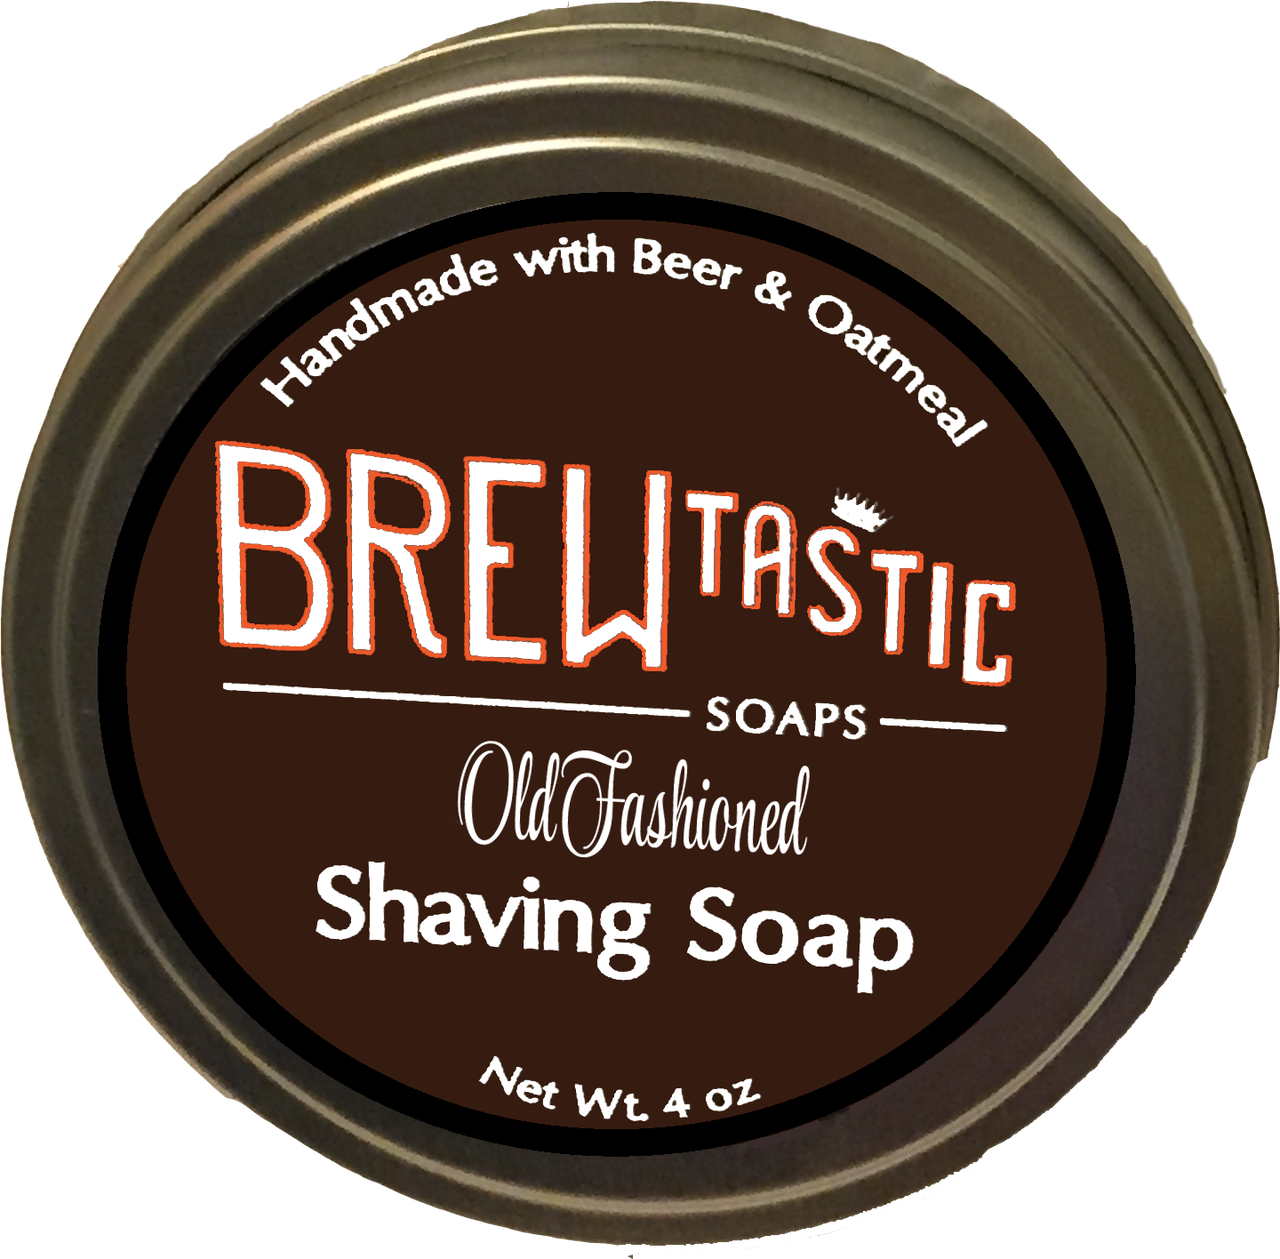 Beer oatmeal shaving soap. Transparent soaps old banner black and white stock